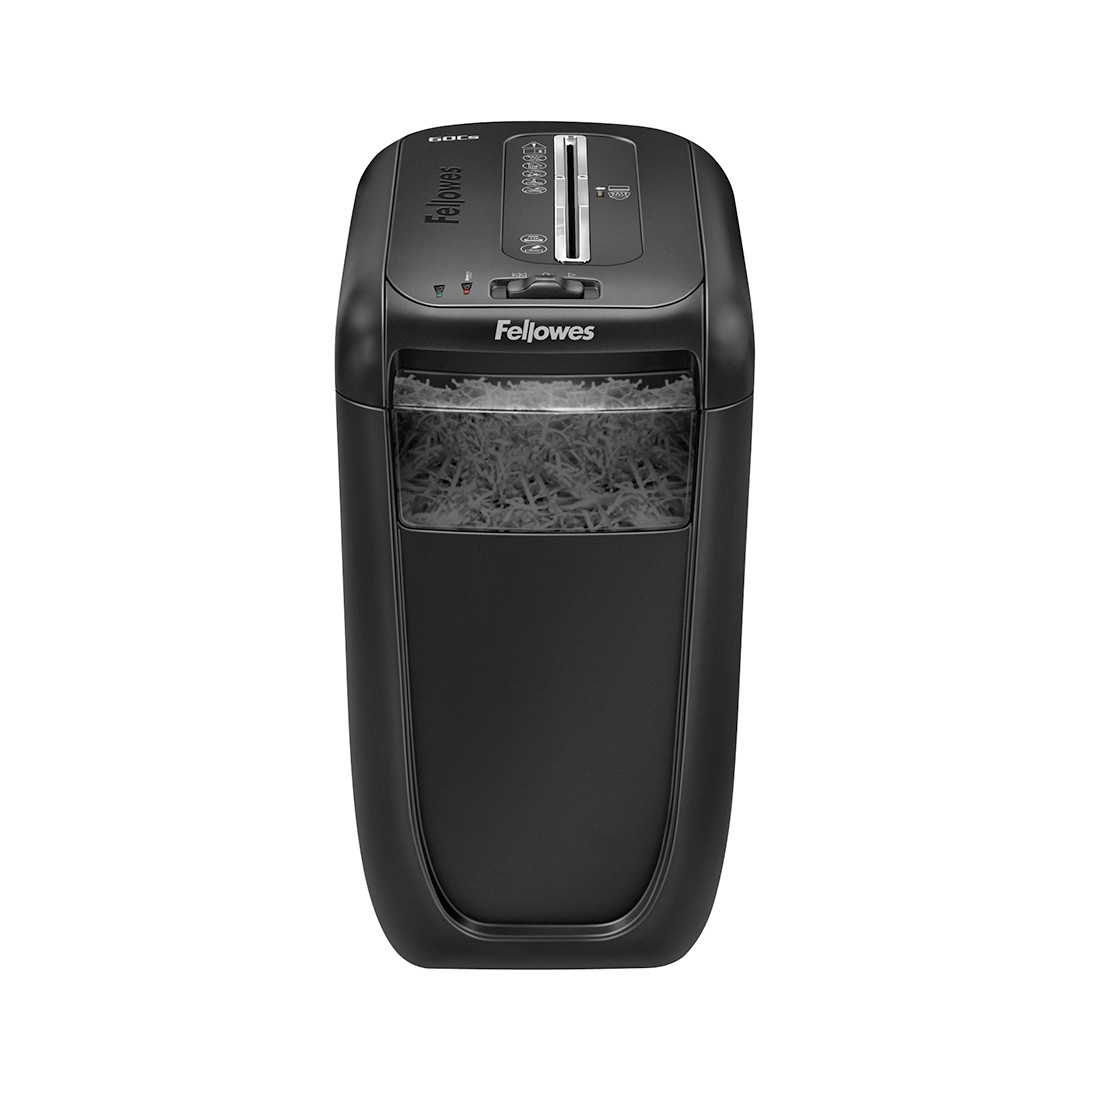 Шредер Fellowes Powershred 60Cs (FS-46061)